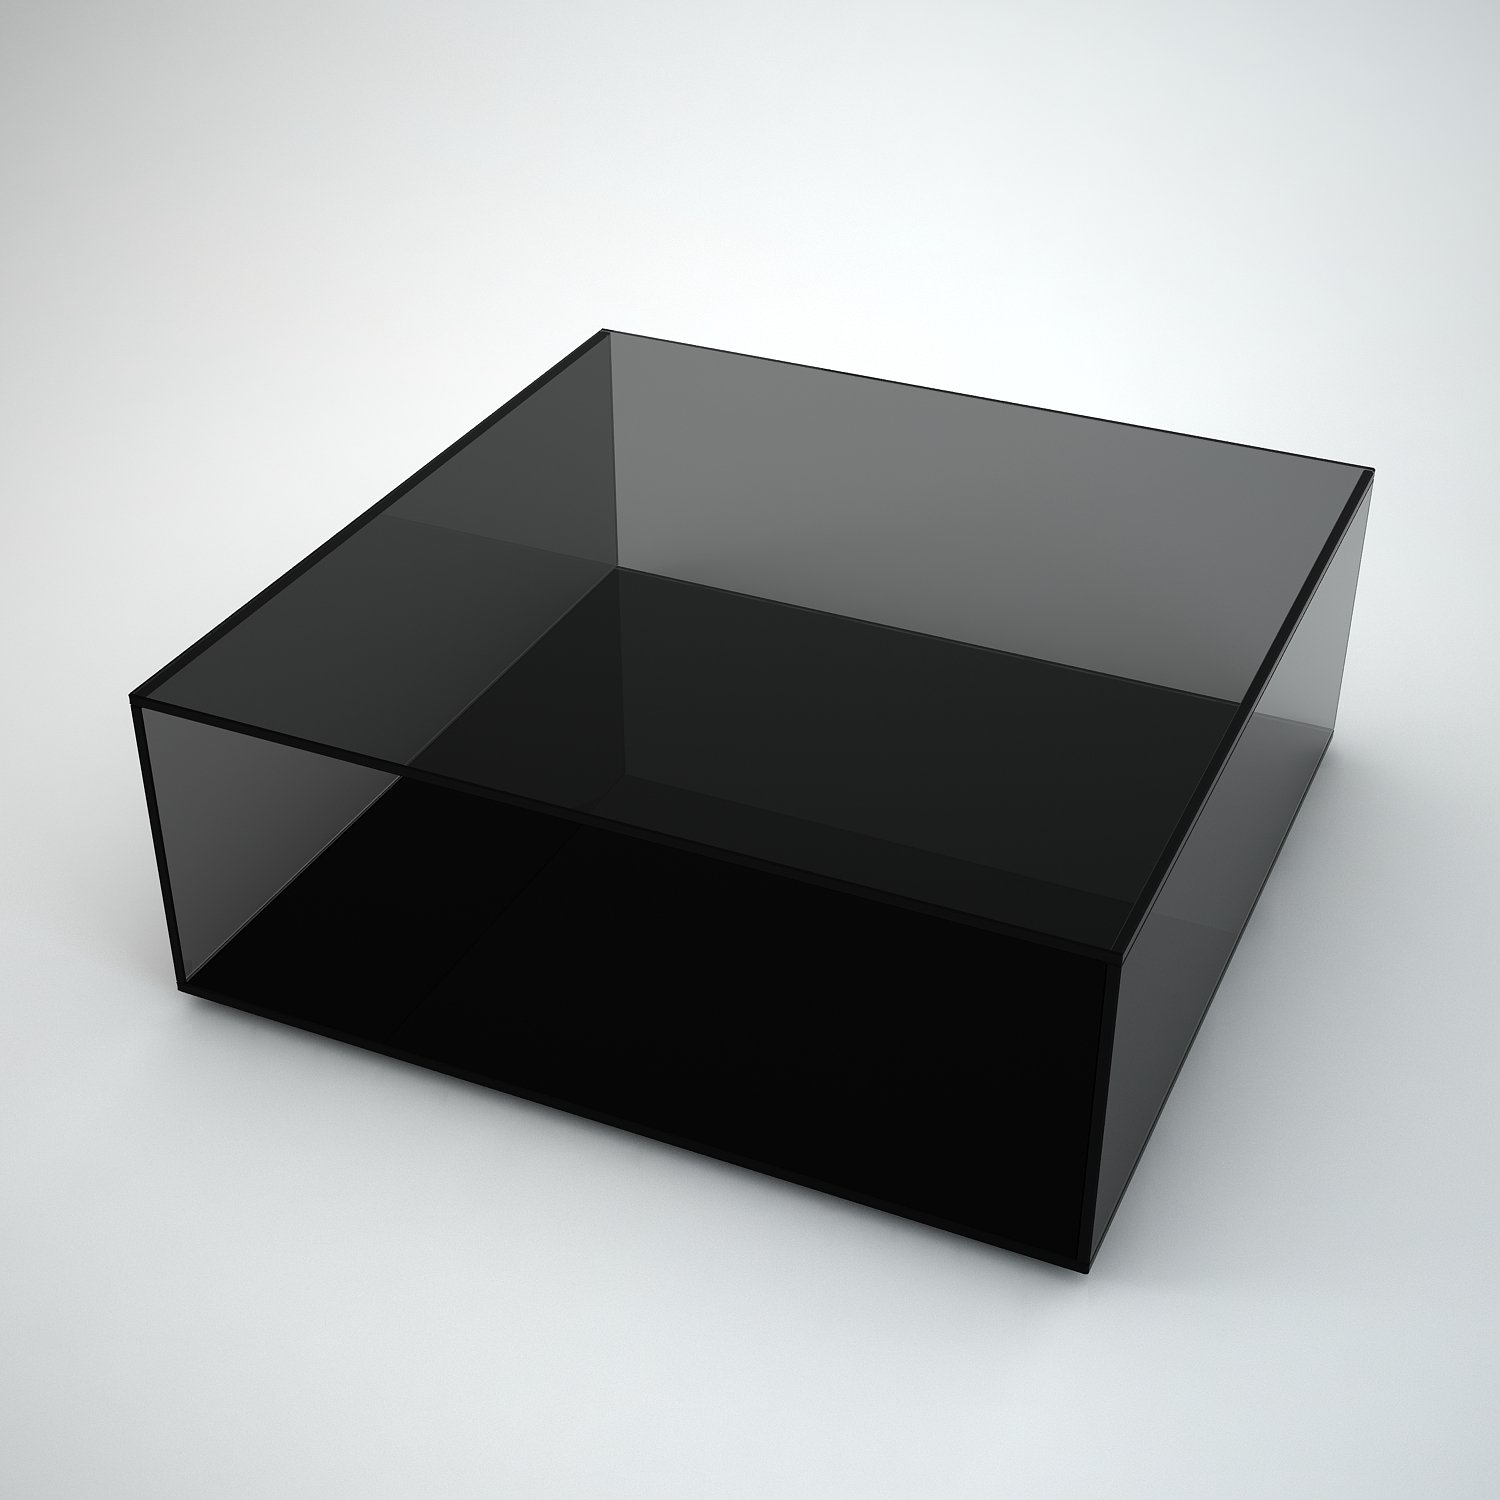 Quebec Square Grey Tint Glass Coffee Table By Klarity